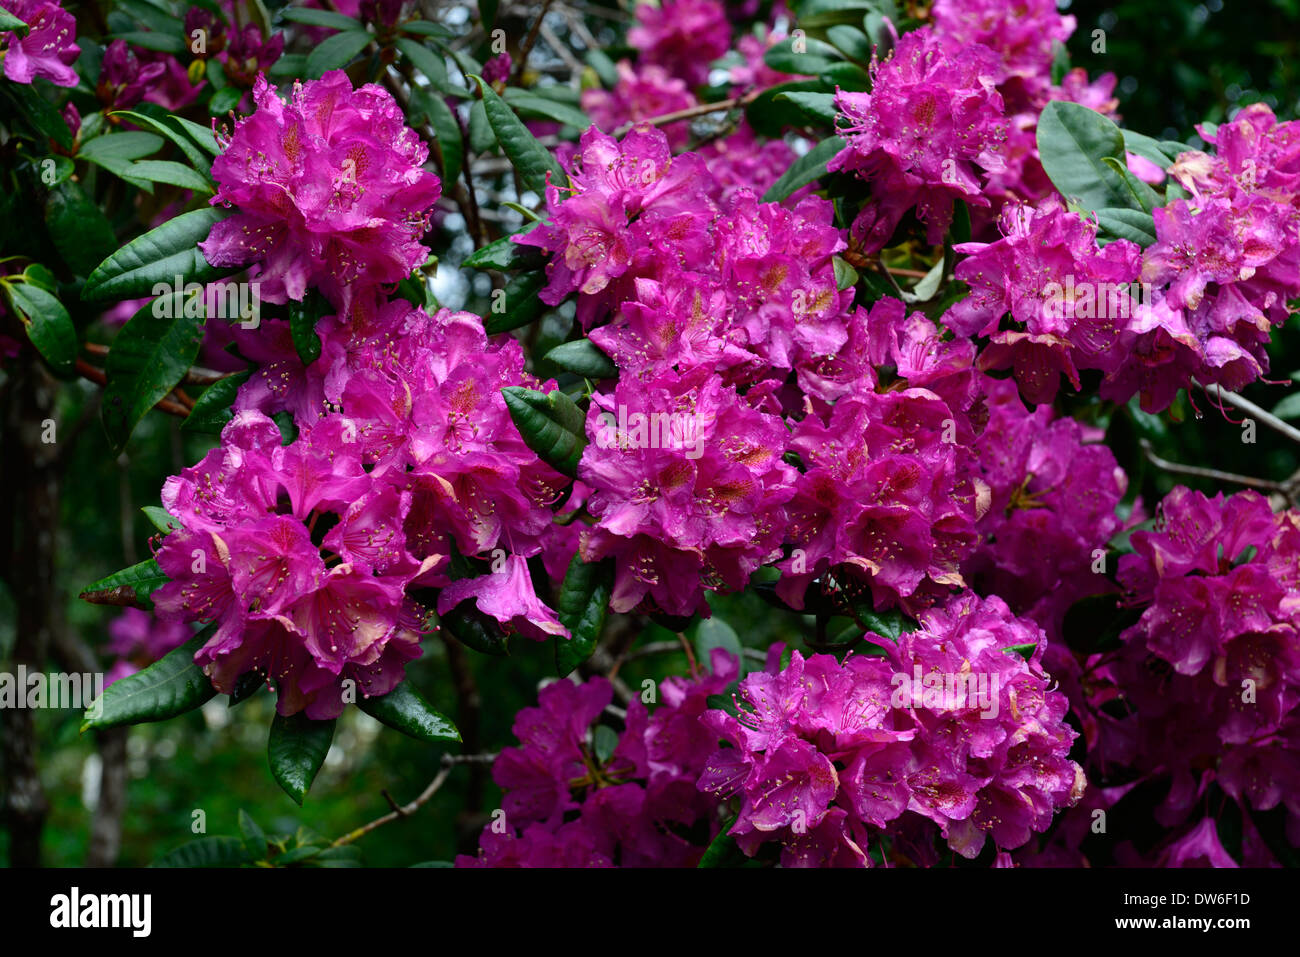 rhododendron royal purple flowers flower flowering. Black Bedroom Furniture Sets. Home Design Ideas